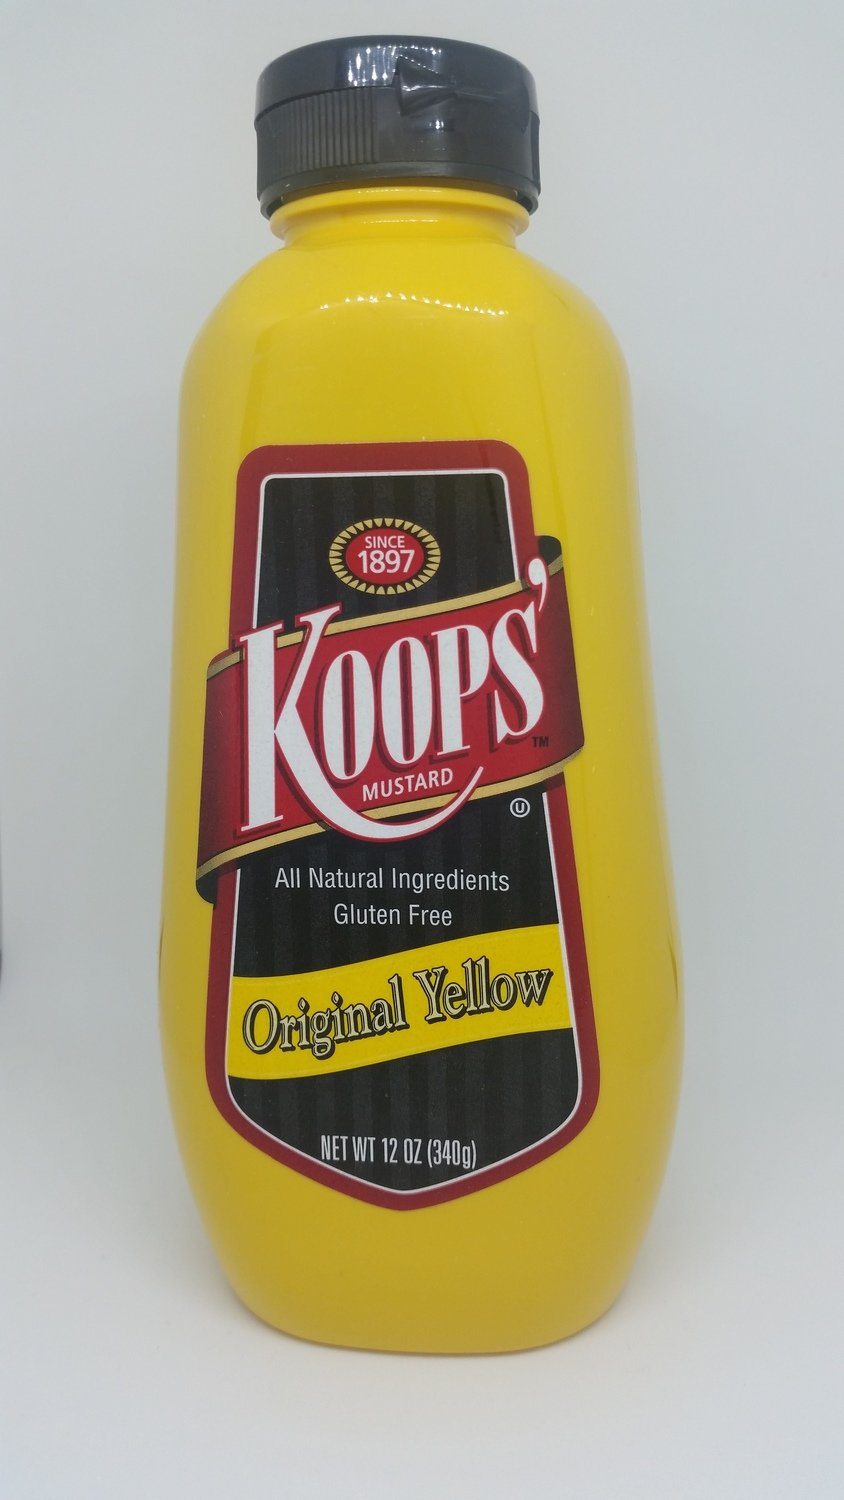 Koops' mustard is a perfect compliment to your backyard burger. Complete your condiment collection by adding Liberated Ketchup!